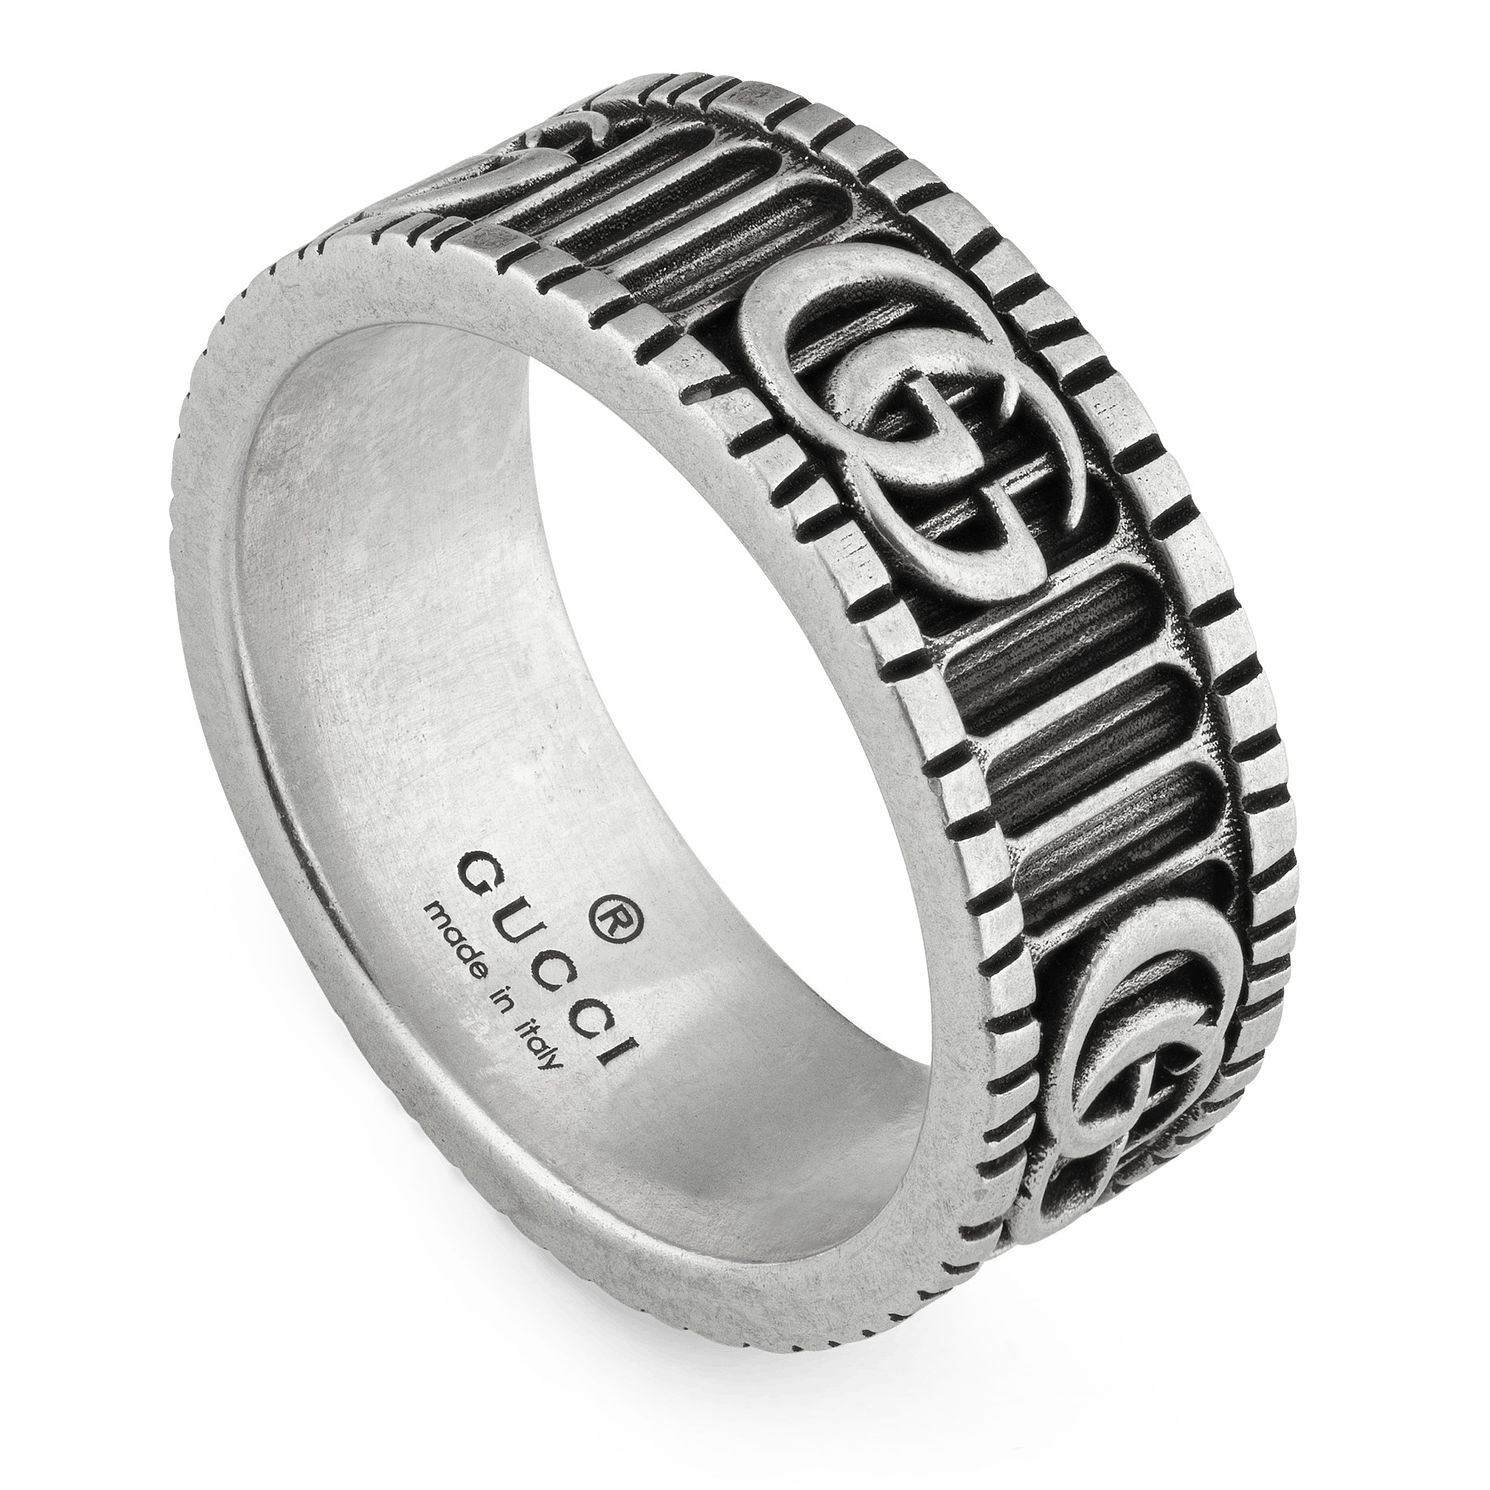 Gucci Men's Silver Marmont Ring - Size 19 - Product number 3234916